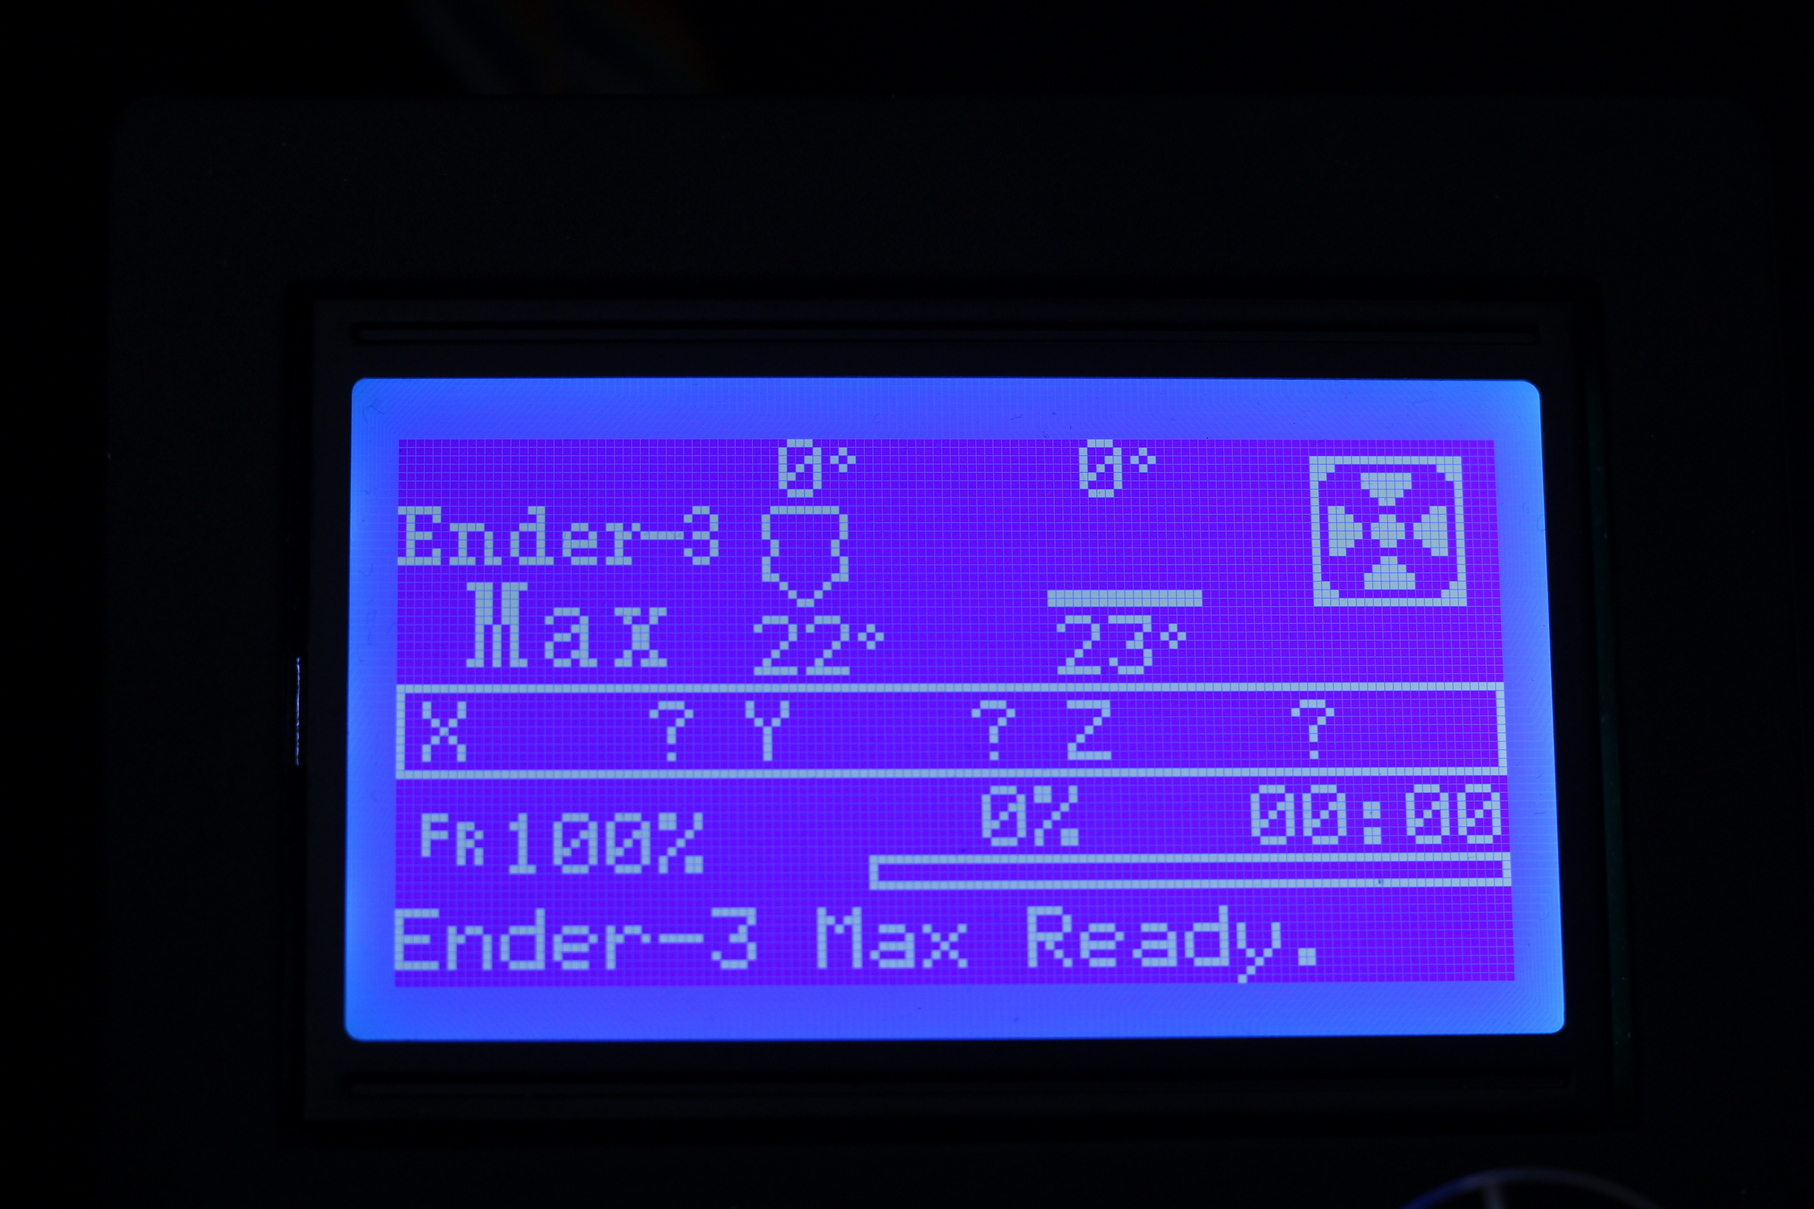 Ender 3 Max Screen Interface 1   Creality Ender 3 Max Review: Bigger equals Better?